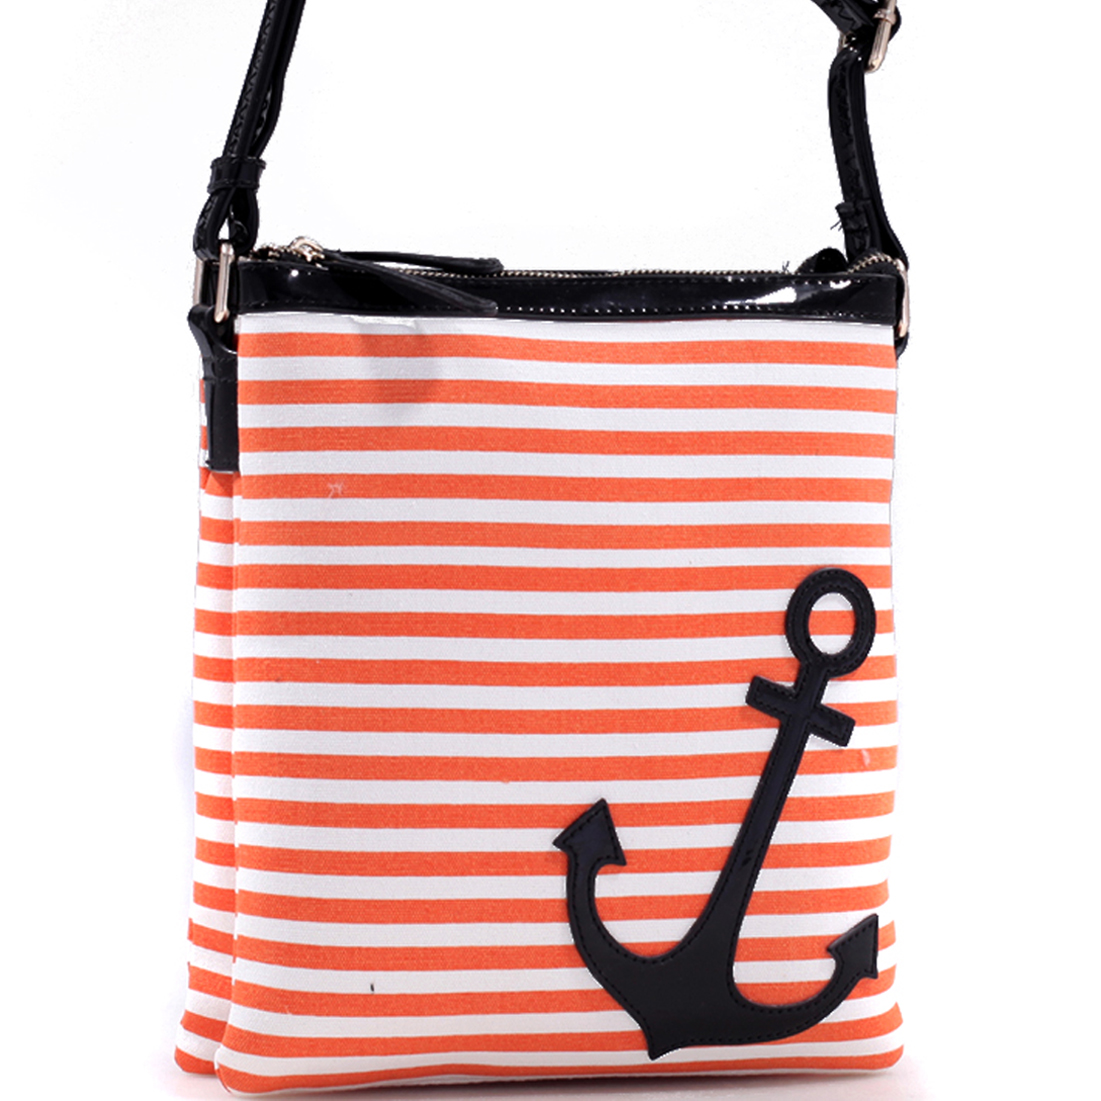 Anchor Canvas Striped Messenger Bag with Adjustable Patent Shoulder Strap